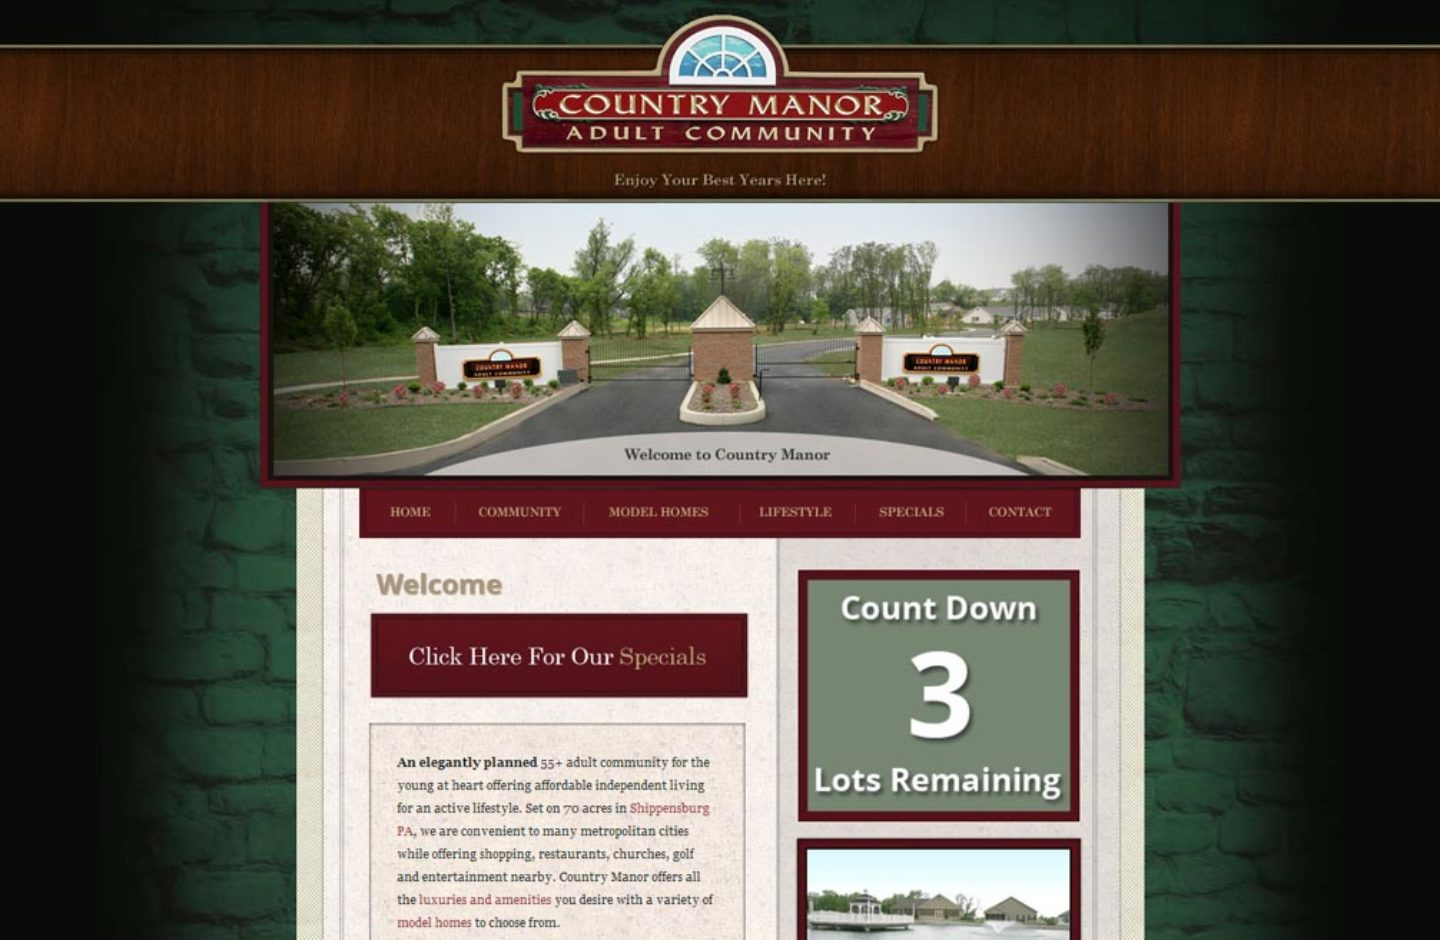 Country Manor Adult Community